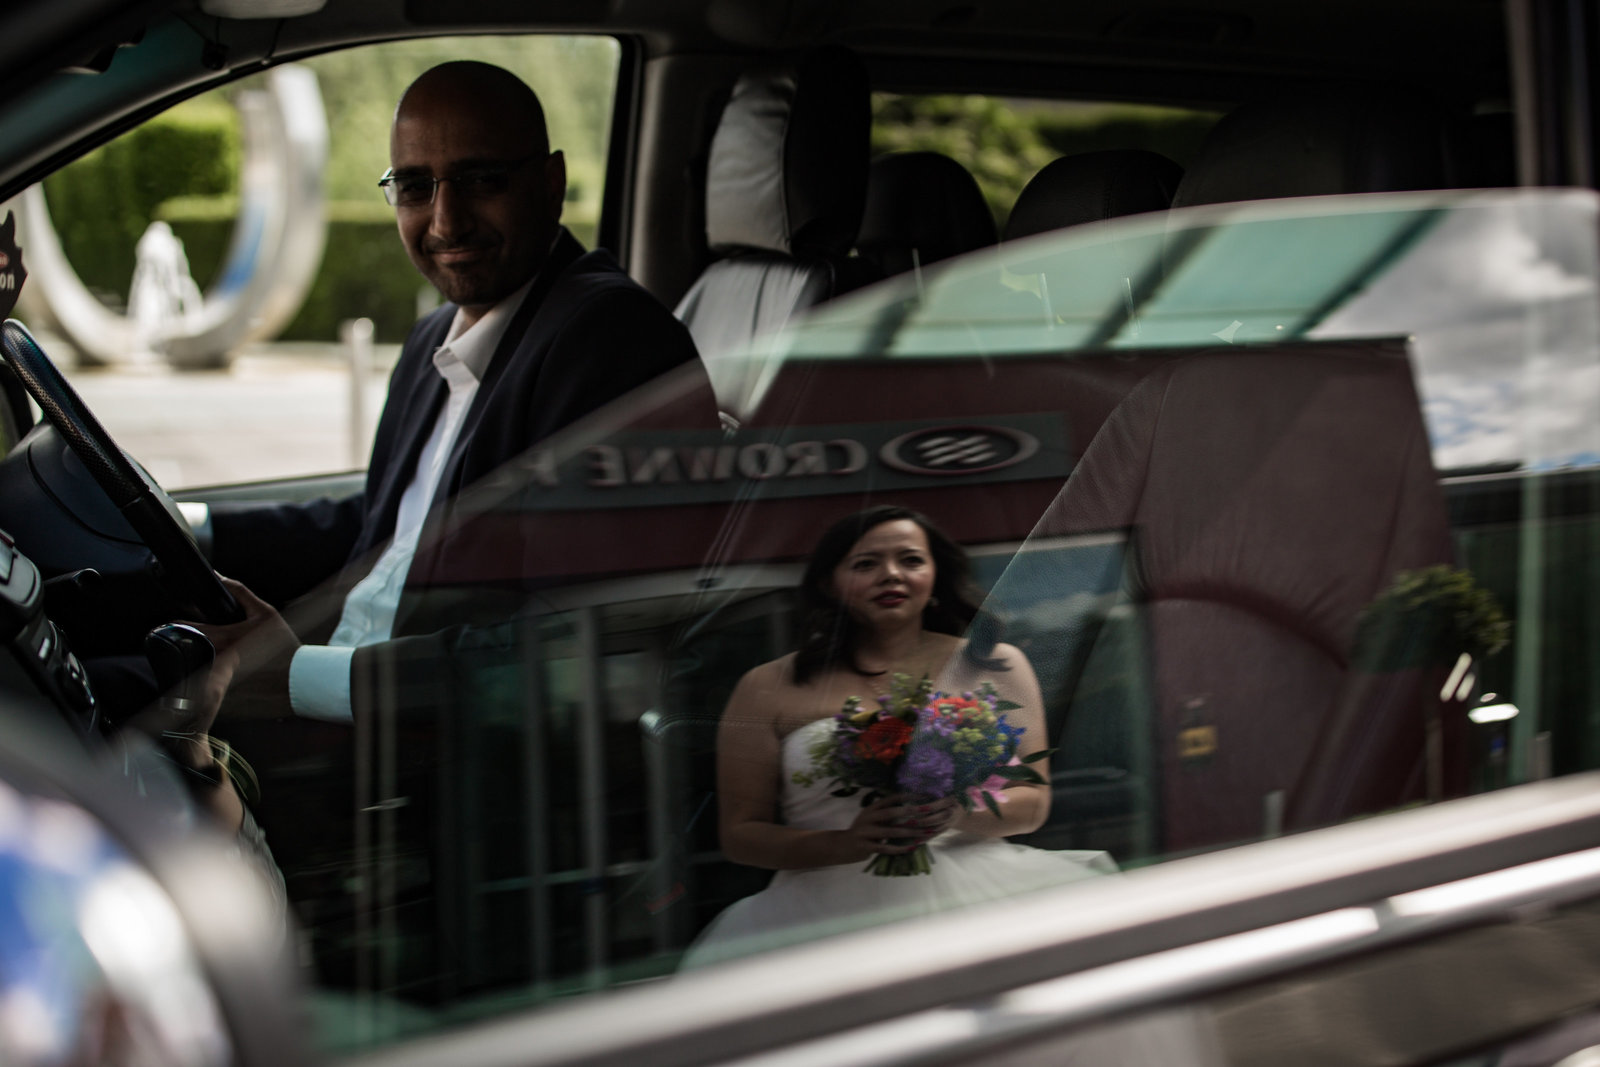 A bride is photographed in the reflection of a car window as the taxi driver smiles at her.